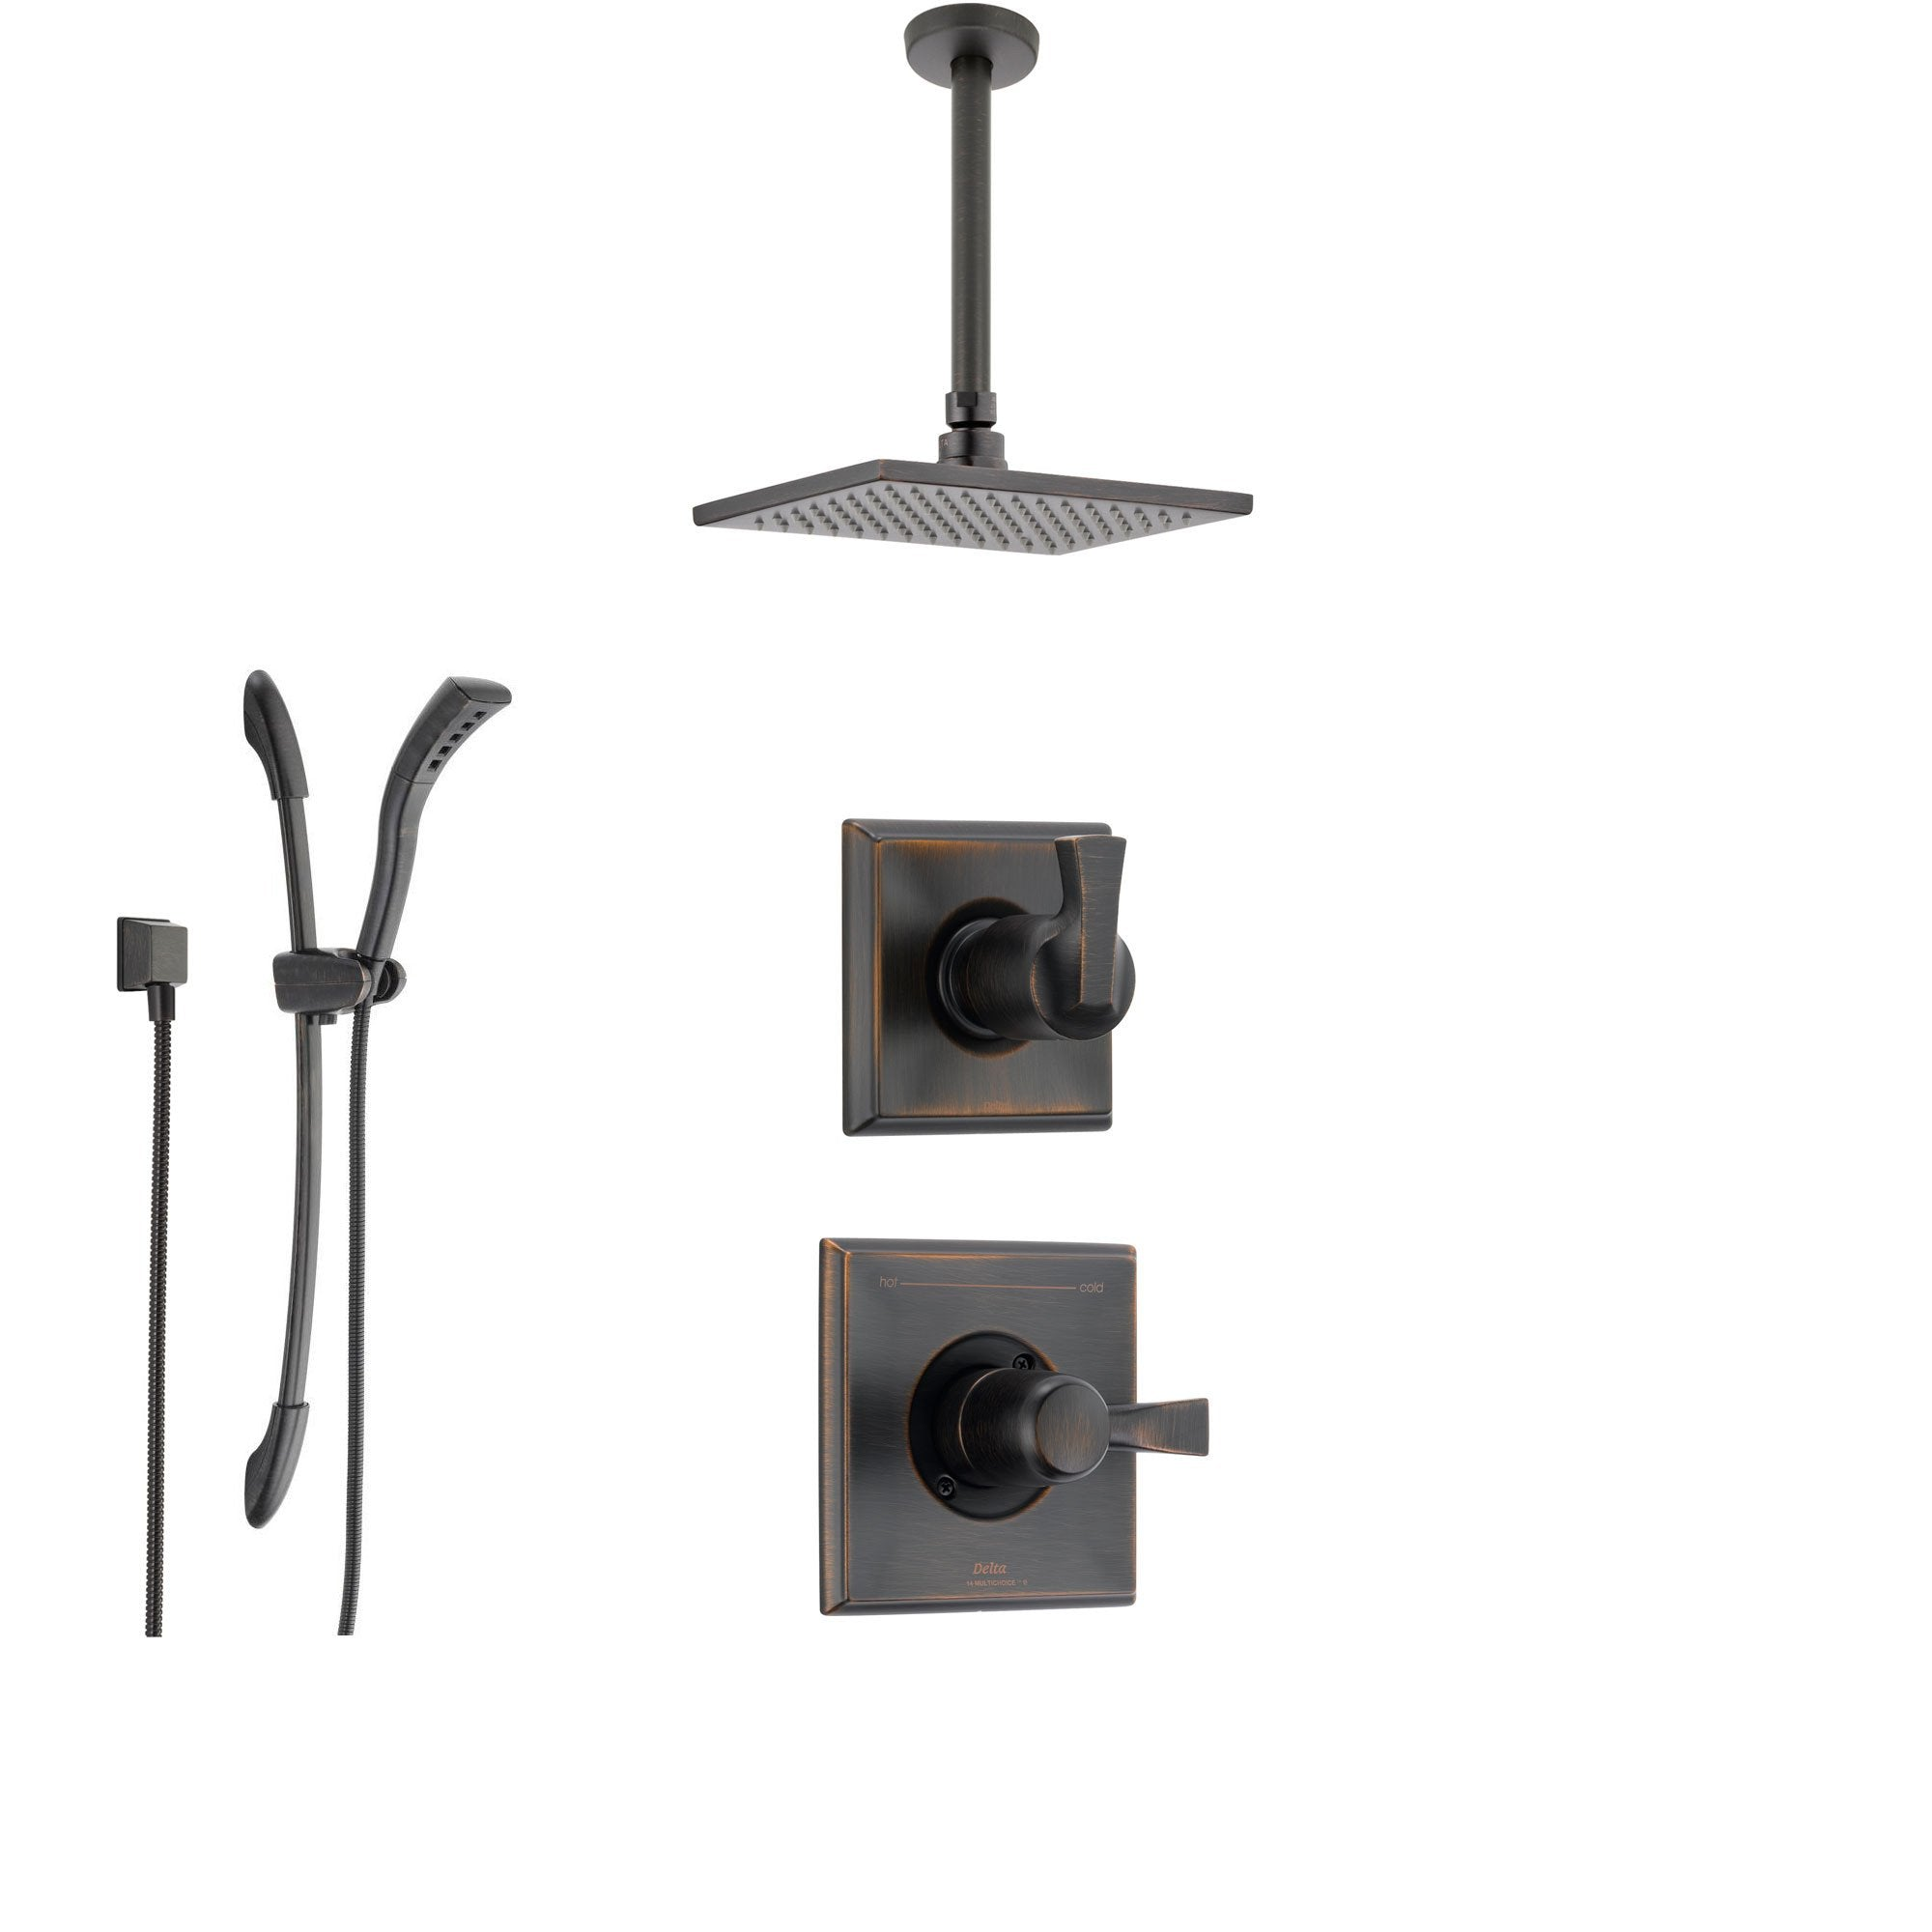 Delta Dryden Venetian Bronze Shower System With Normal Shower Handle,  3 Setting Diverter,